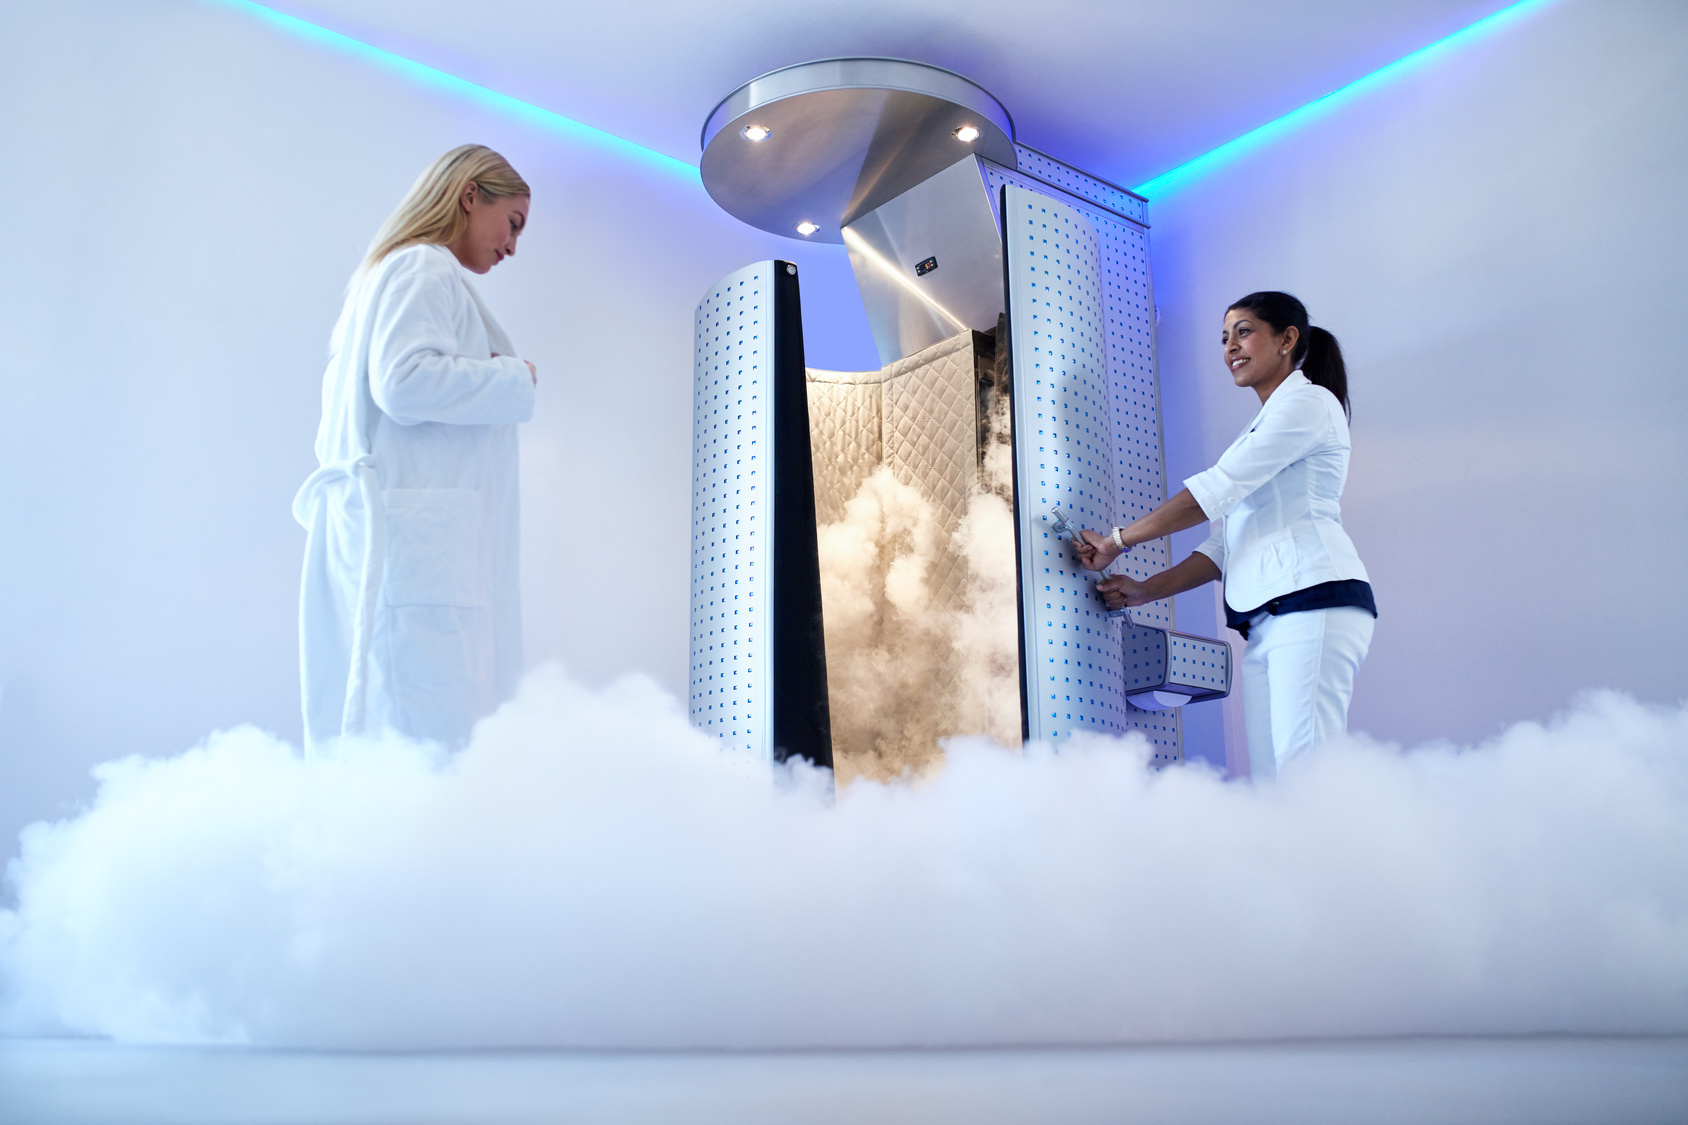 Image of cryotherapy runners